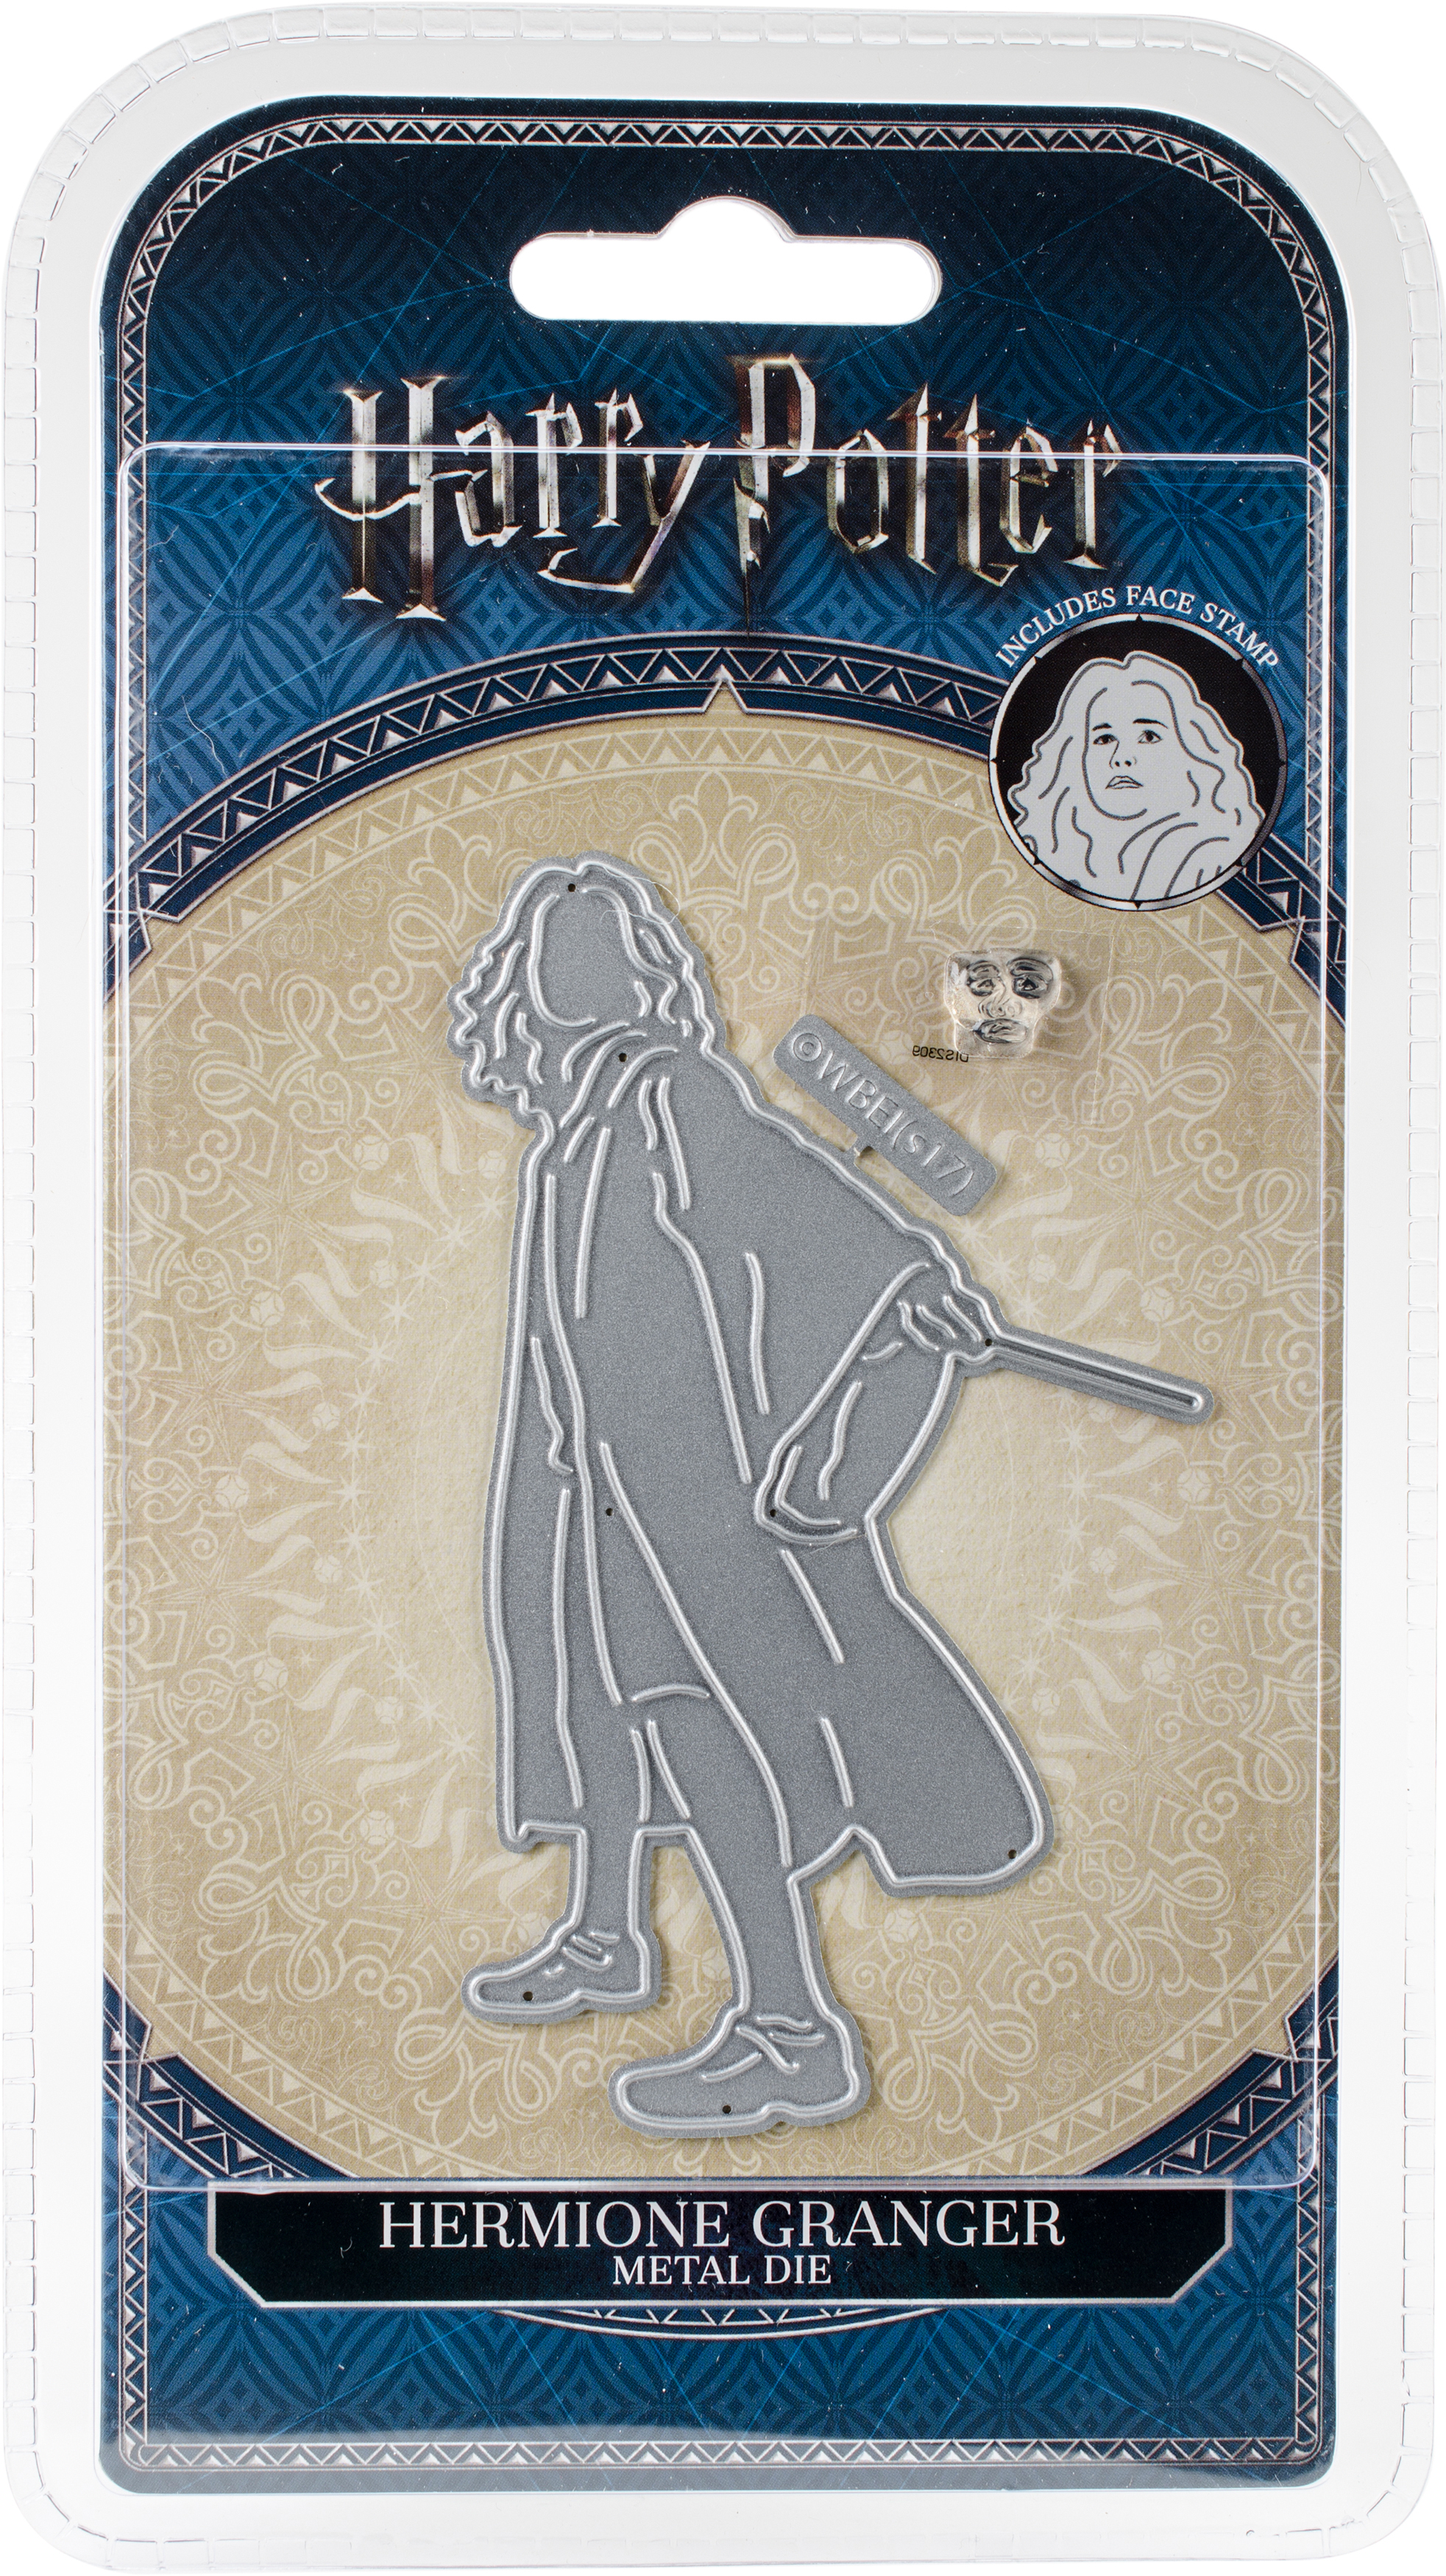 ^Harry Potter Hermione Granger Metal Die